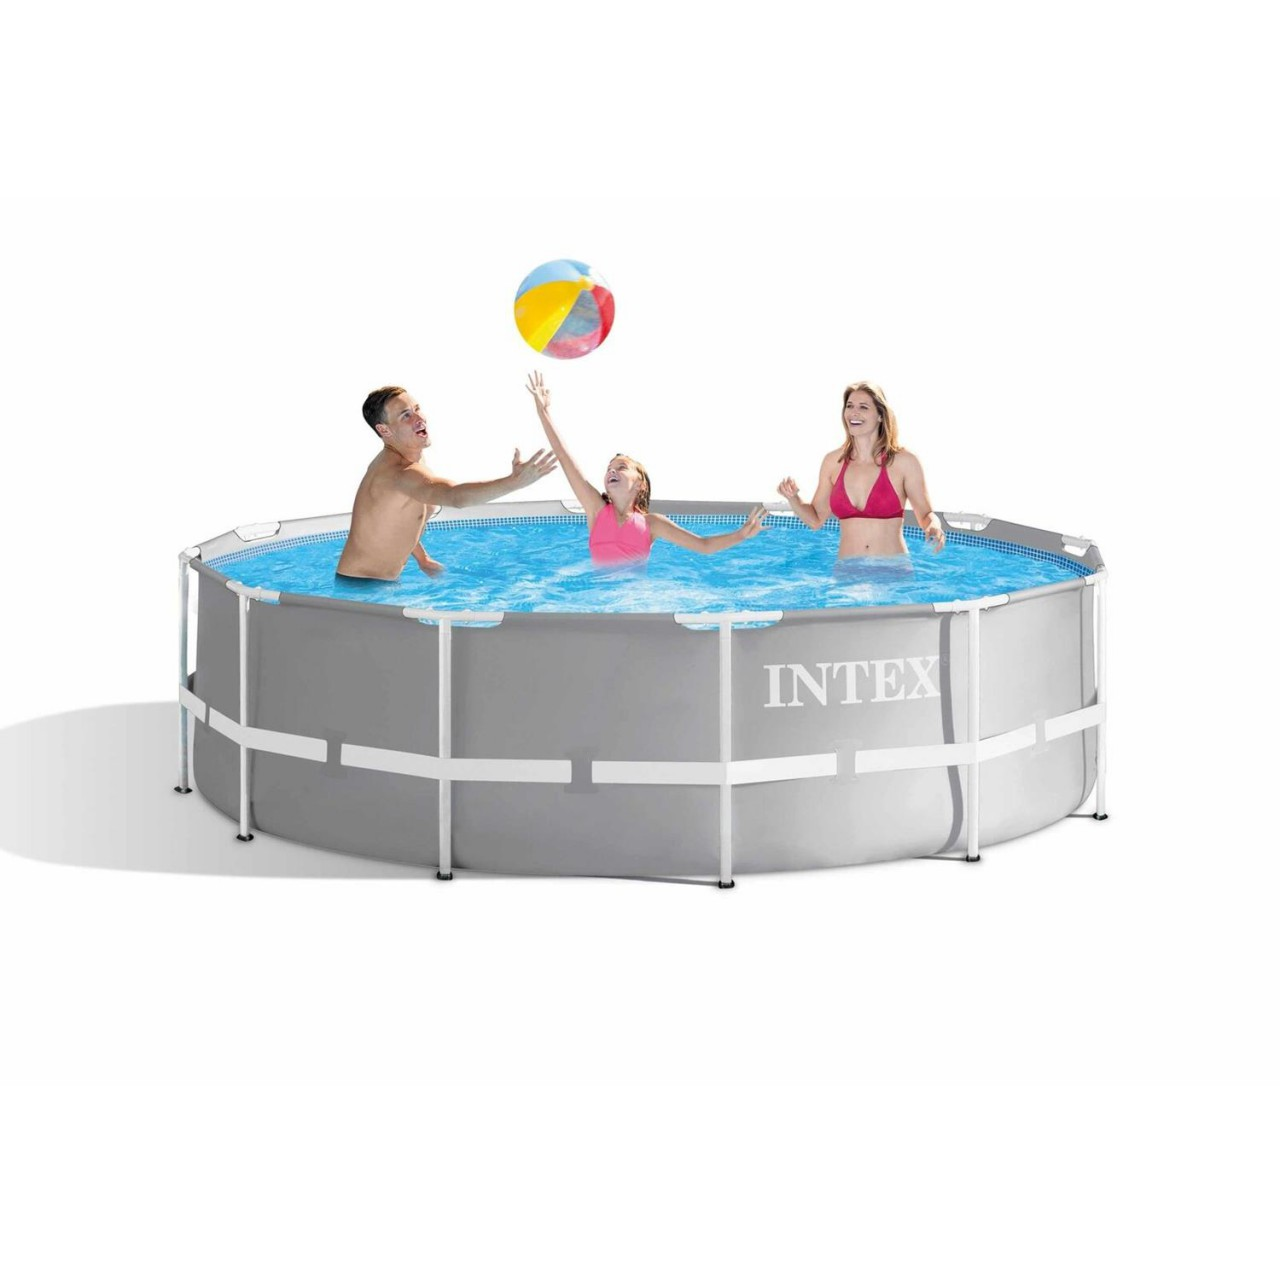 Intex 26716 Frame Pool Set Prism Rondo Ø 366 x 99 cm Schwimmbecken Pool